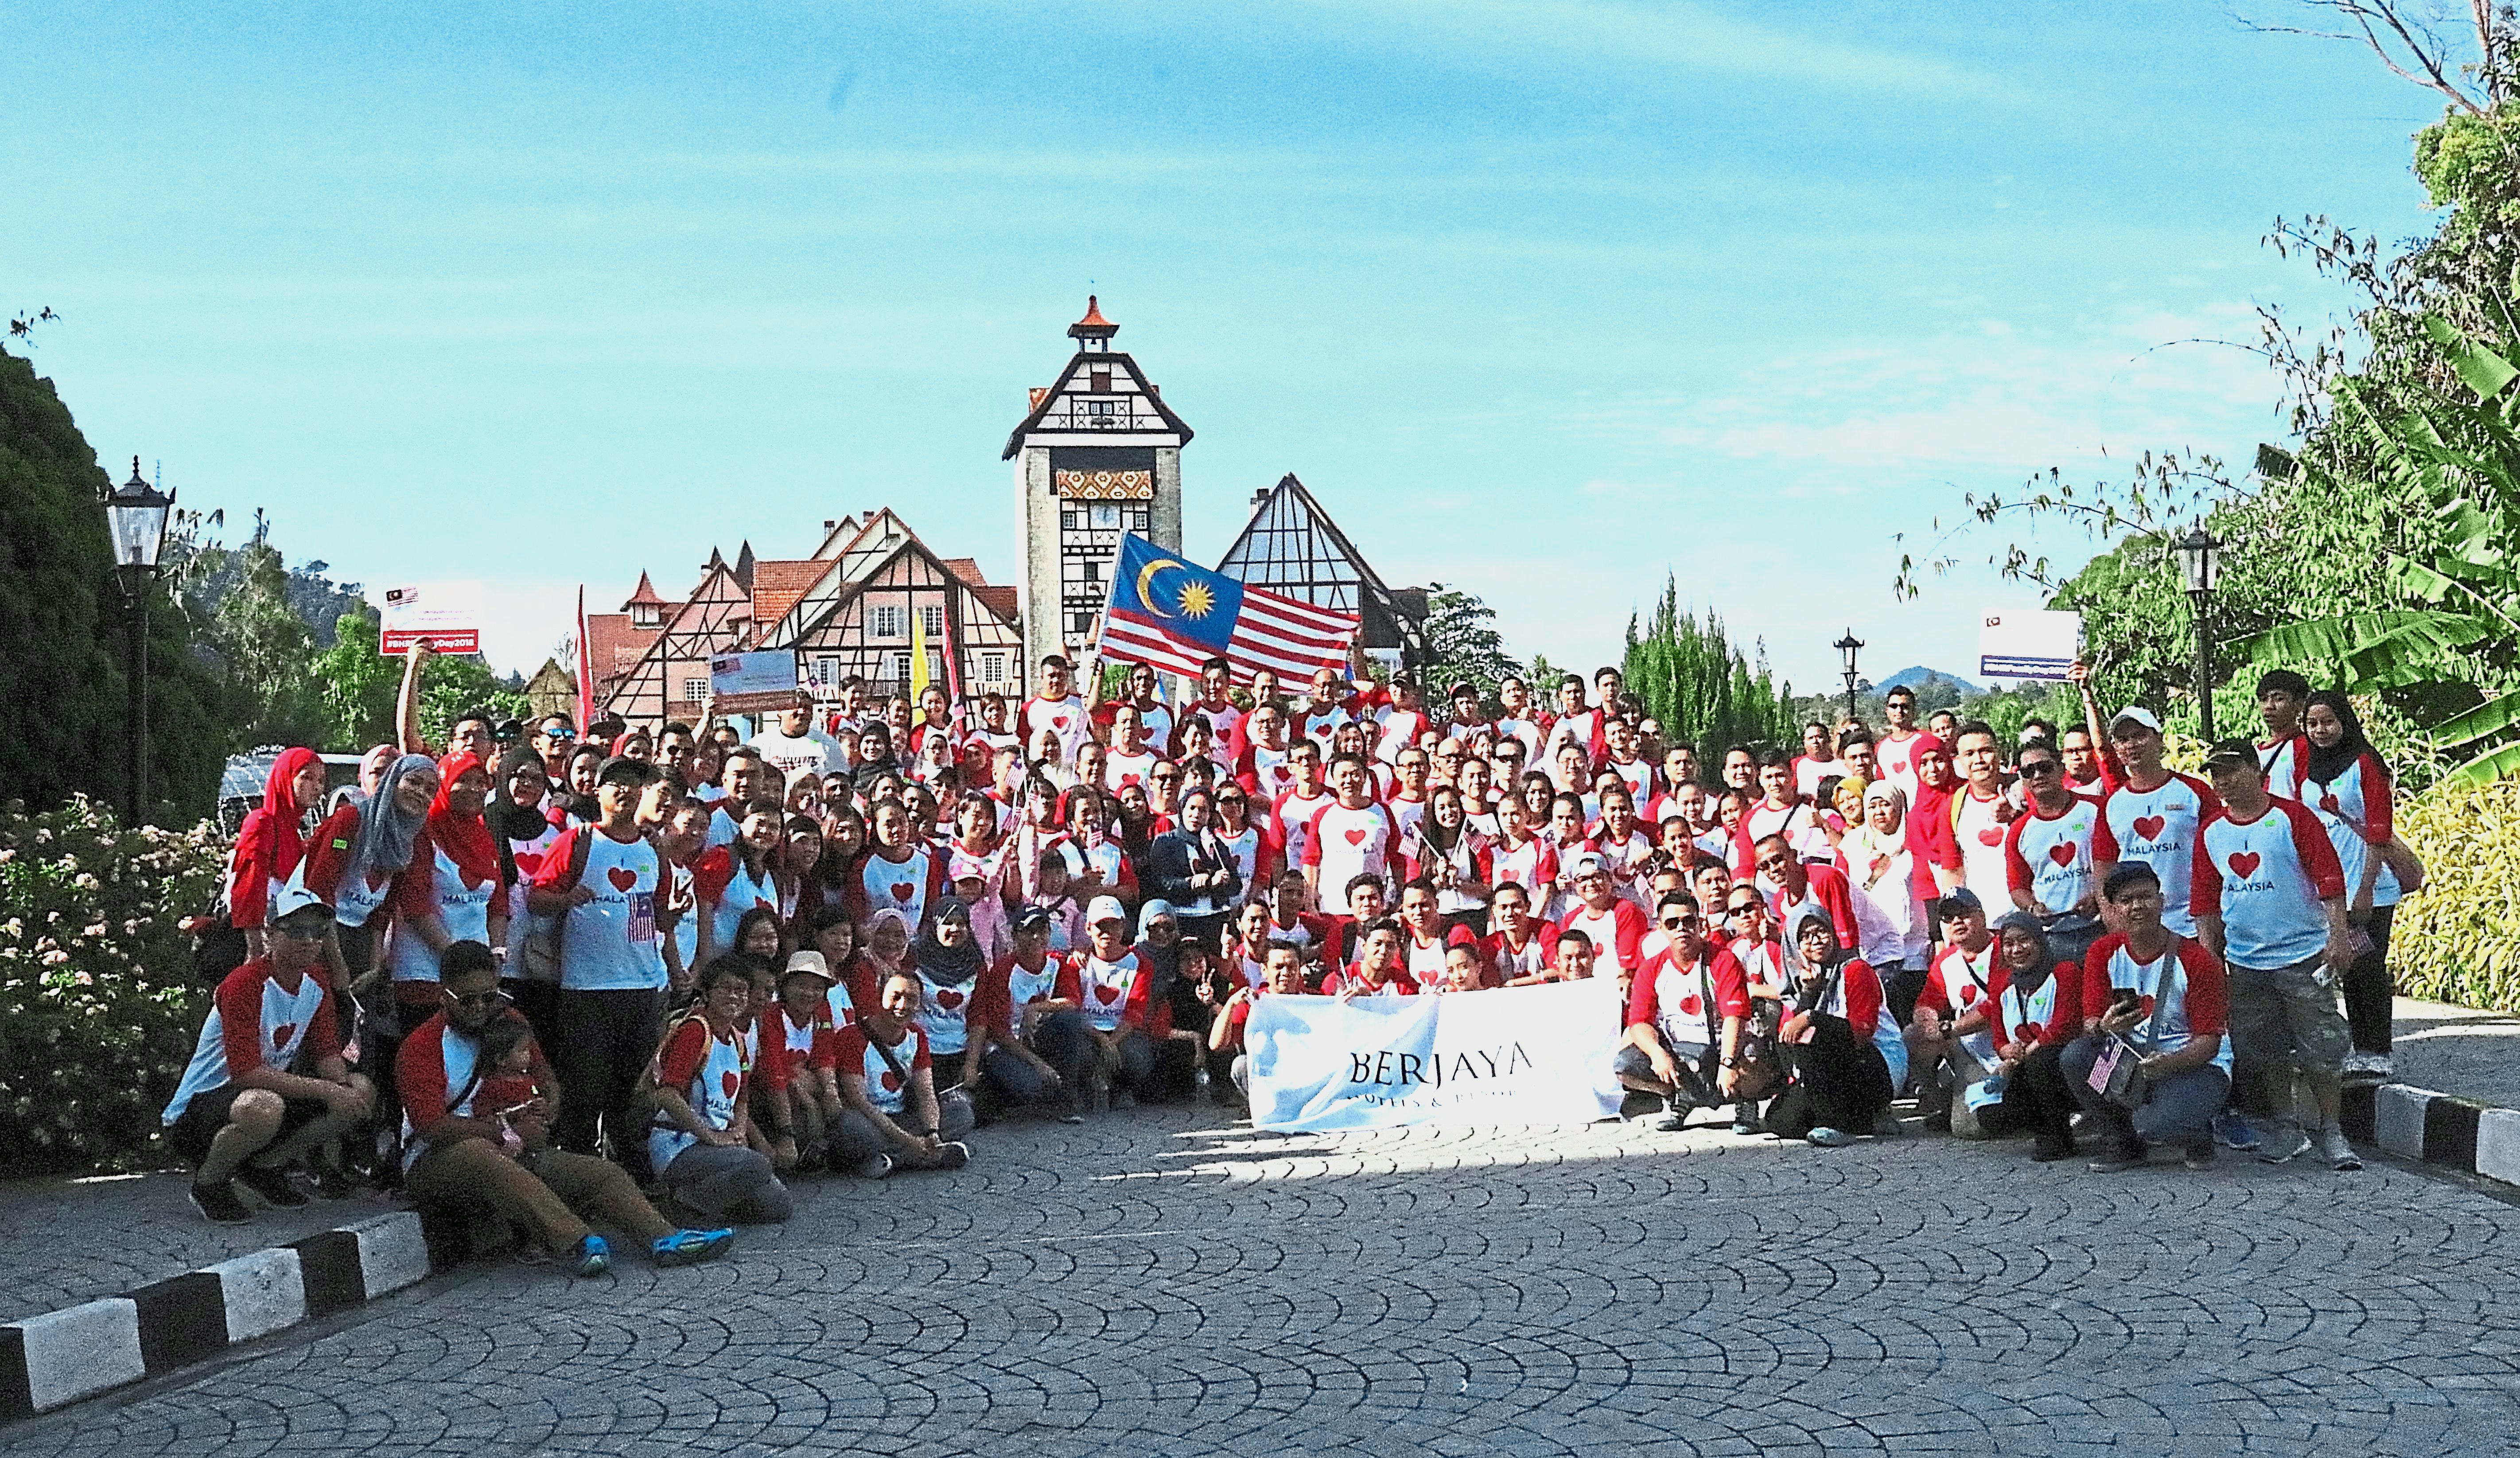 Some 230 employees from various Berjaya Hotels & Resorts properties in Malaysia participated in BHR Family Day 2018 in Colmar Tropicale and The Chateau Wellness Resort.